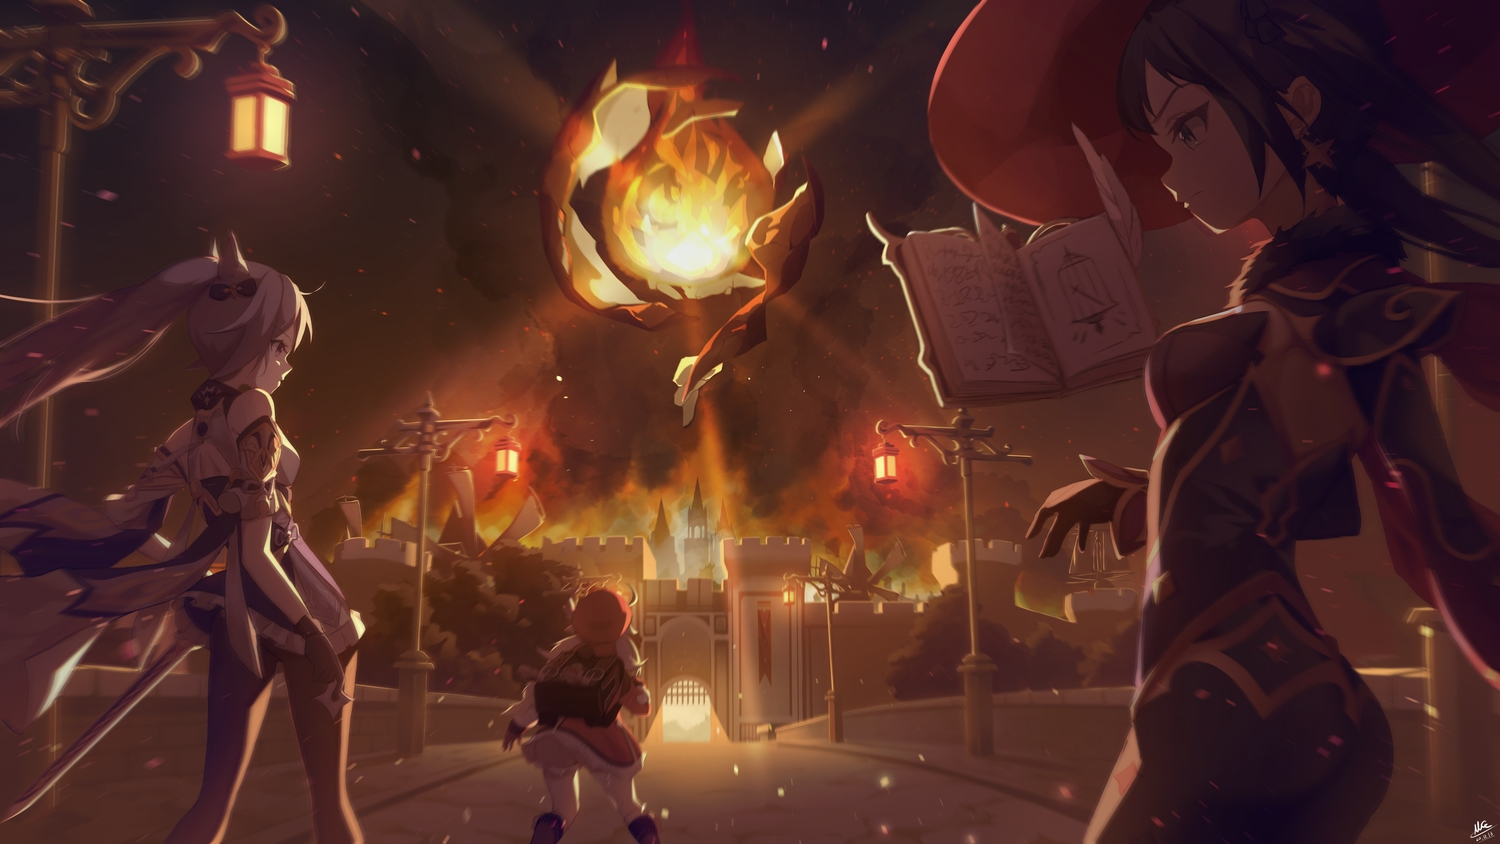 book building fire genshin_impact hat keqing_(genshin_impact) klee_(genshin_impact) long_hair magica mona_megistus sword twintails weapon witch witch_hat